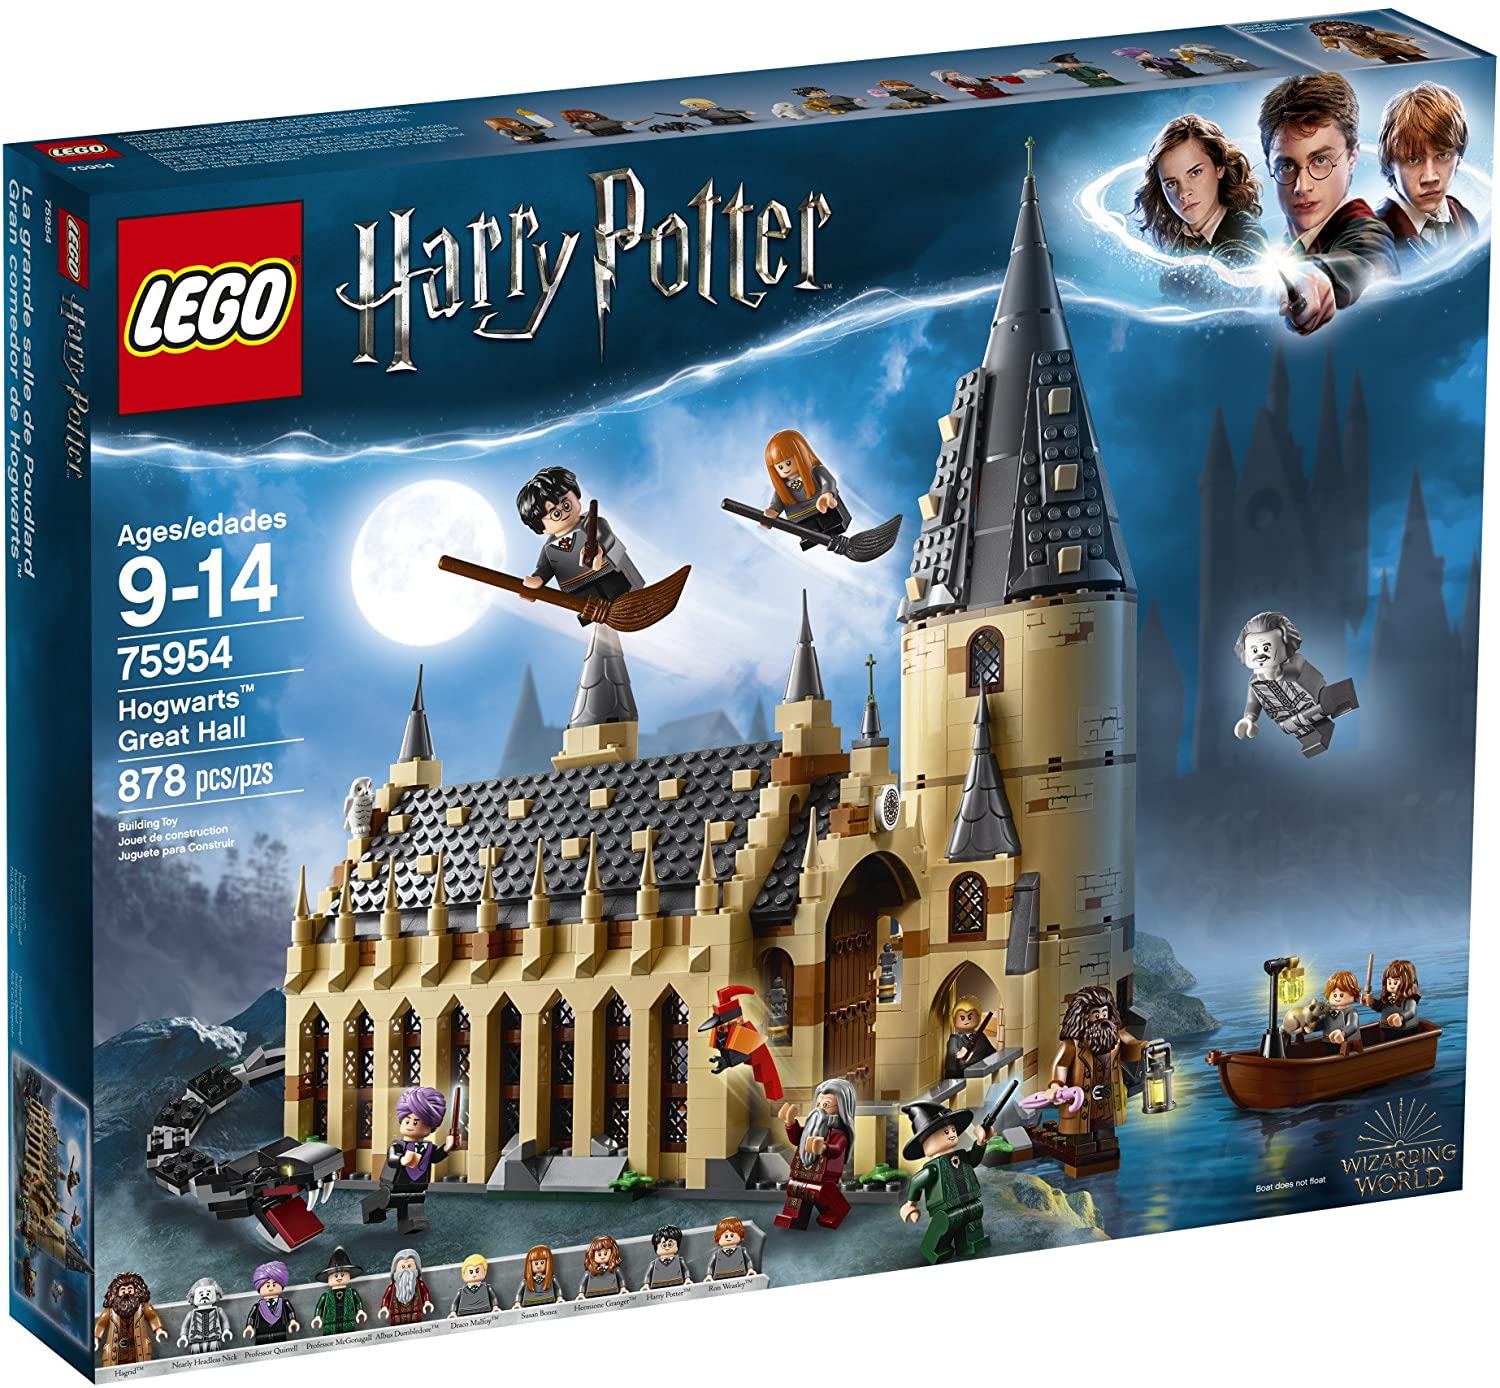 Lego Harry Potter Hogwarts Great Hall 75954 Building Kit And Magic Castle Toy Fantasy Creatures Hermione Granger Draco Malfoy And Hagrid 878 Pieces Building Sets Amazon Canada